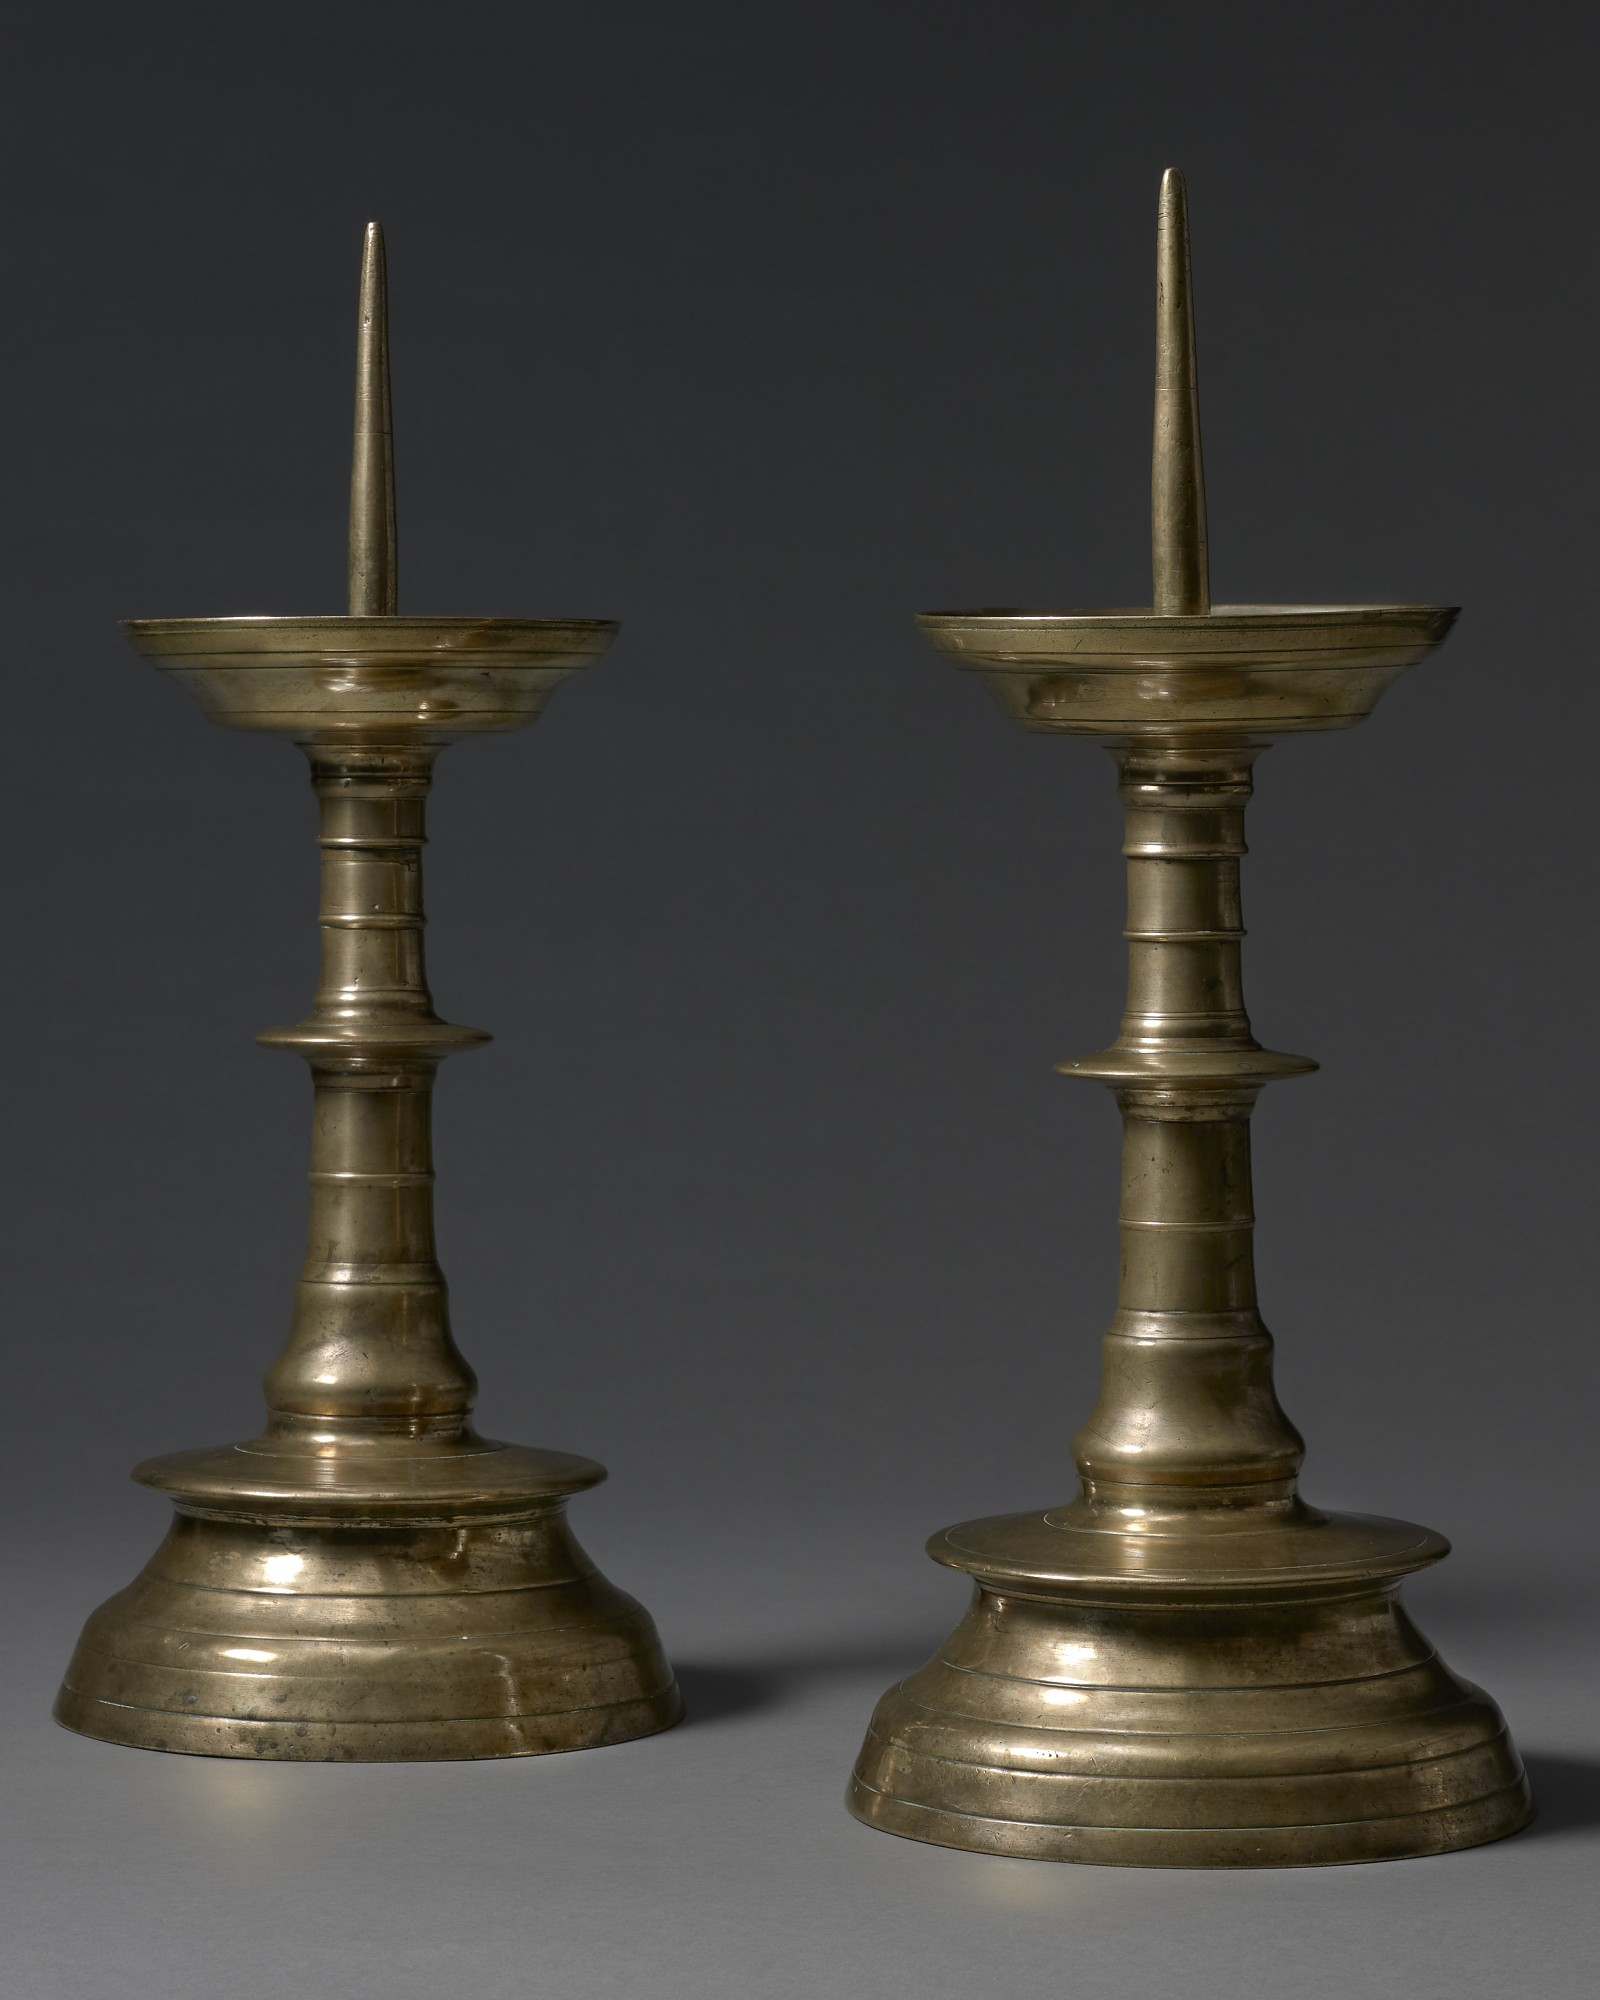 A Pair of Pricket Candlesticks, Flemish, c. 1500